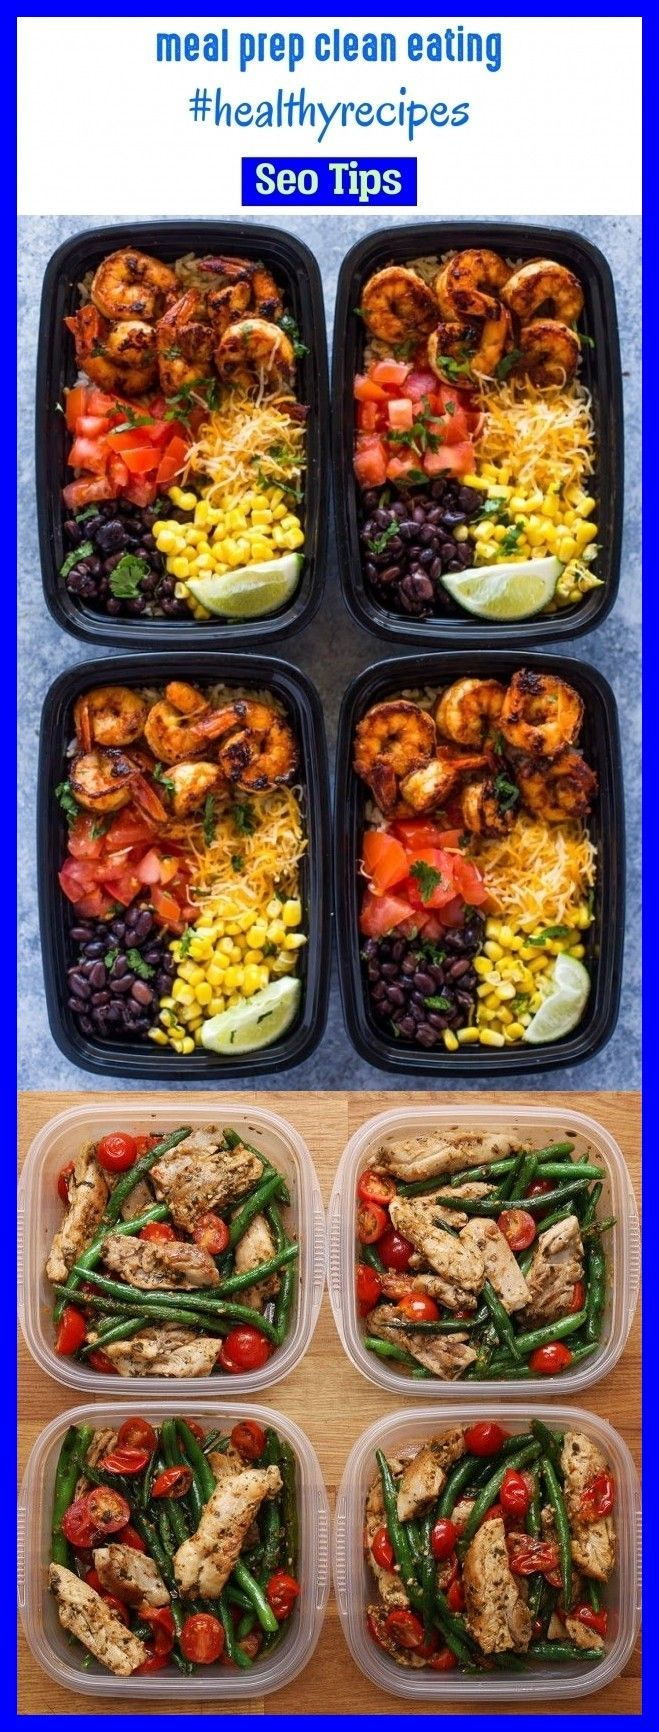 Meal prep clean eating clean eating for beginners clean eating recipes clean eating on a budget clean eating soup clean eating breakfast clean eating dinner c eating brea...